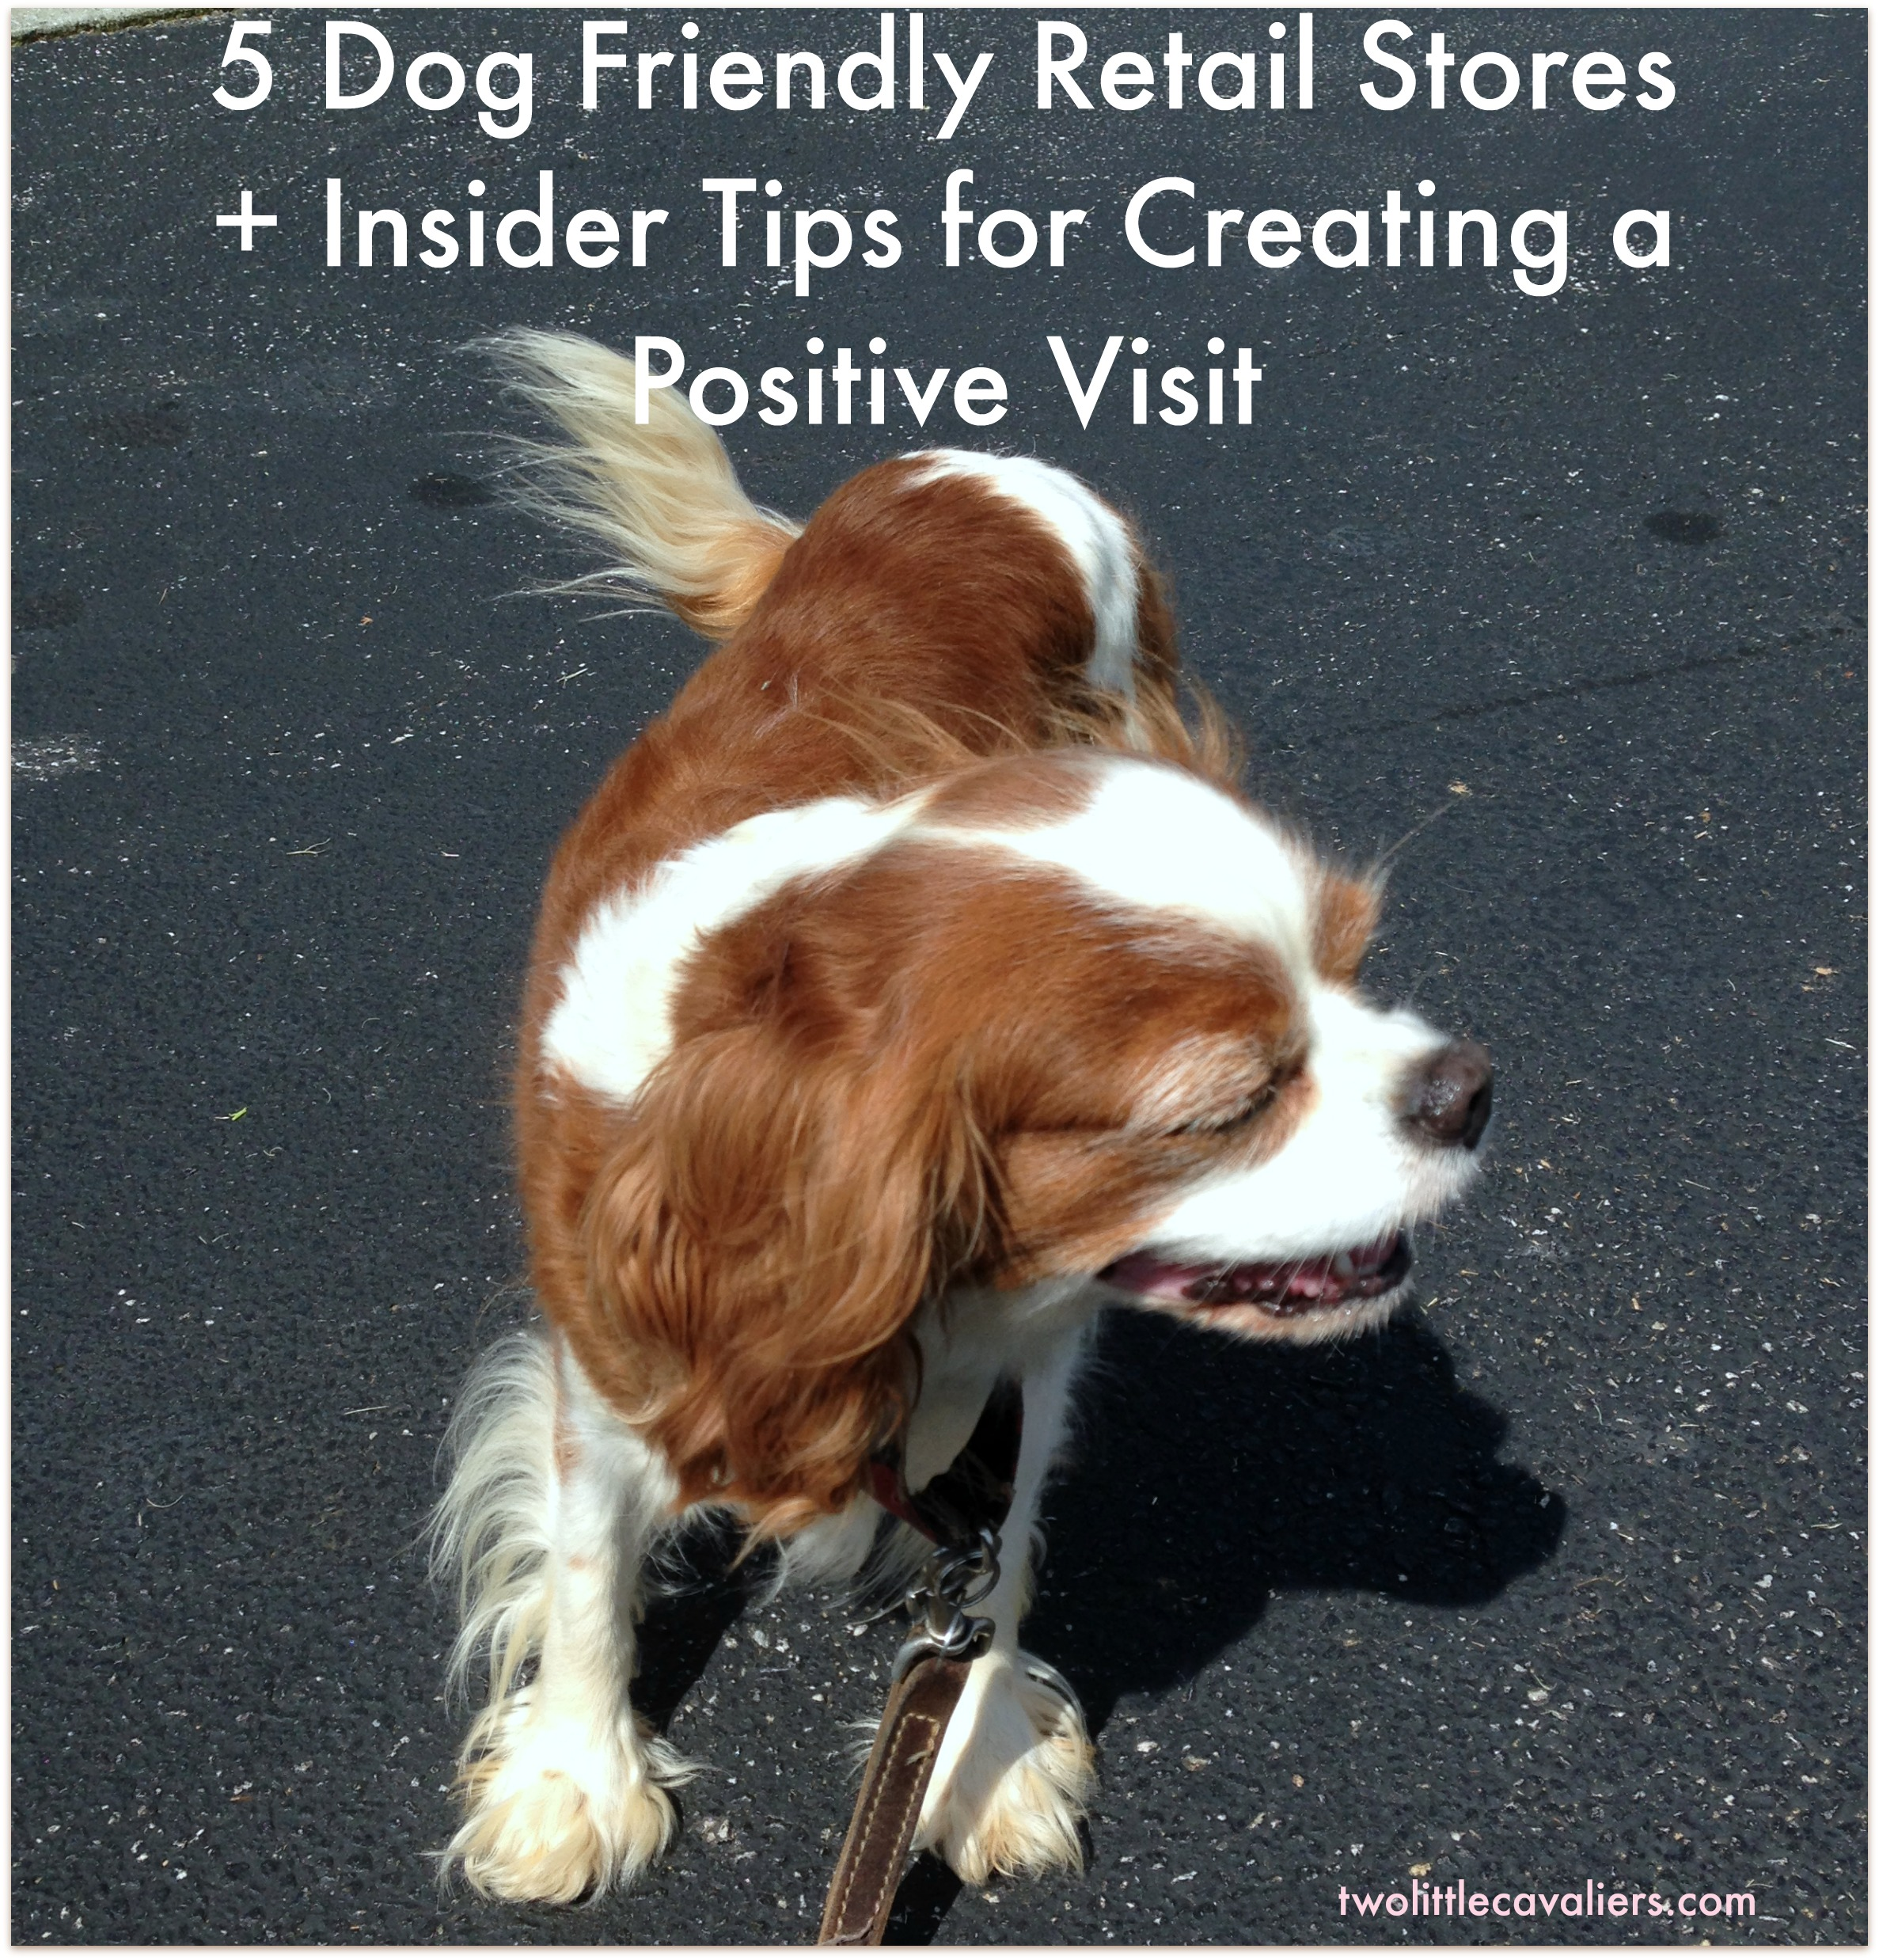 5 Dog Friendly Retail Stores